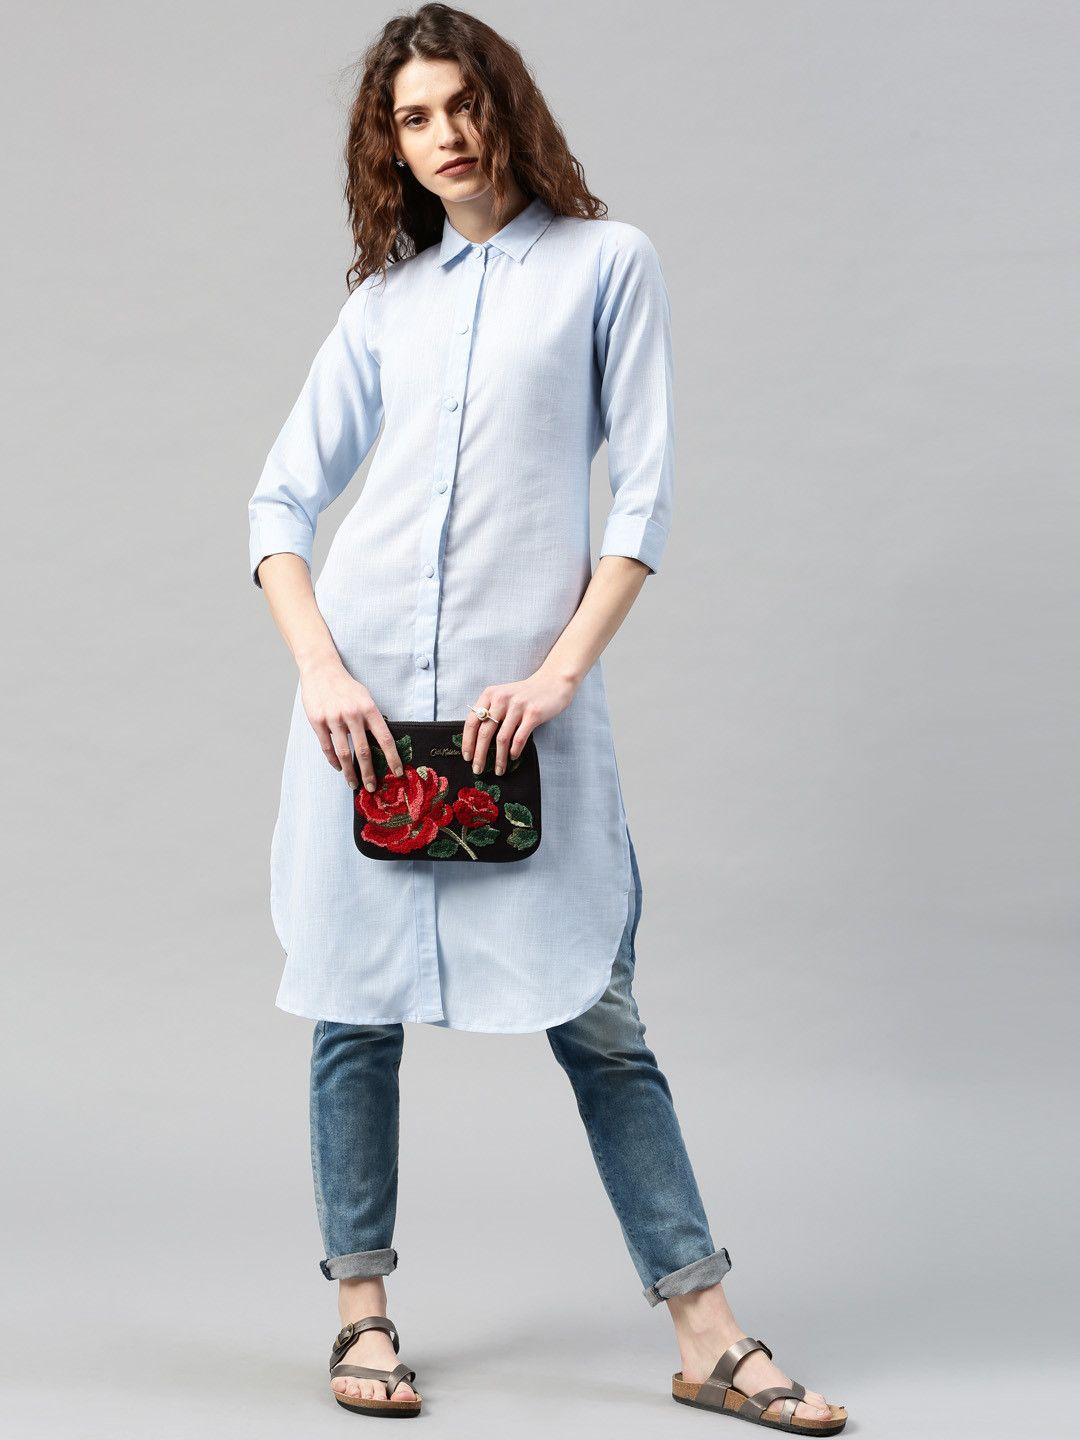 d366fa46f35 Pathani Kurta Designs For Girl  Women7s Kurti in 2019 rh pinterest.com